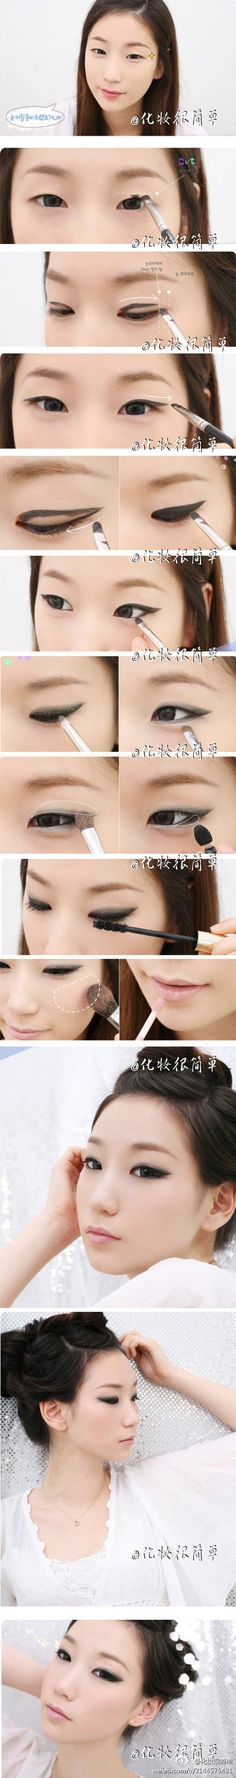 Asian eye makeup for monolids - aww, she's so cute, even before the makeup!